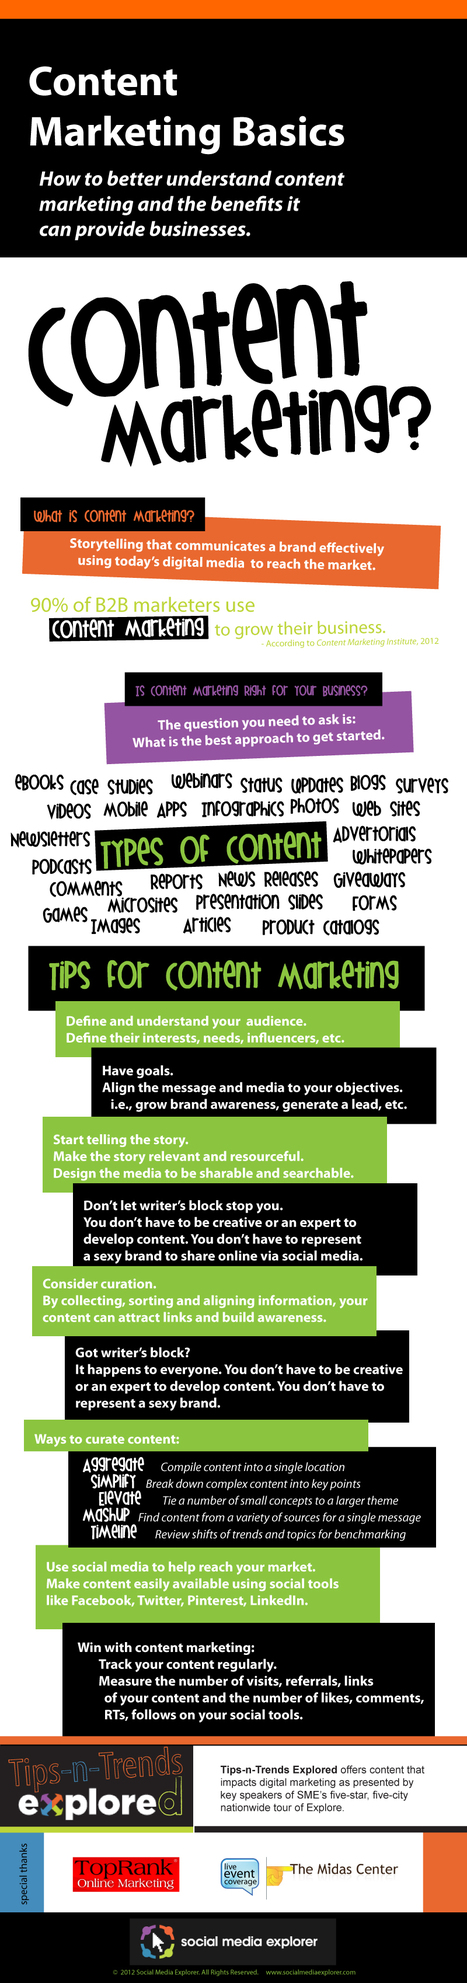 Content Marketing Basics [INFOGRAPHIC] | Time to Learn | Scoop.it